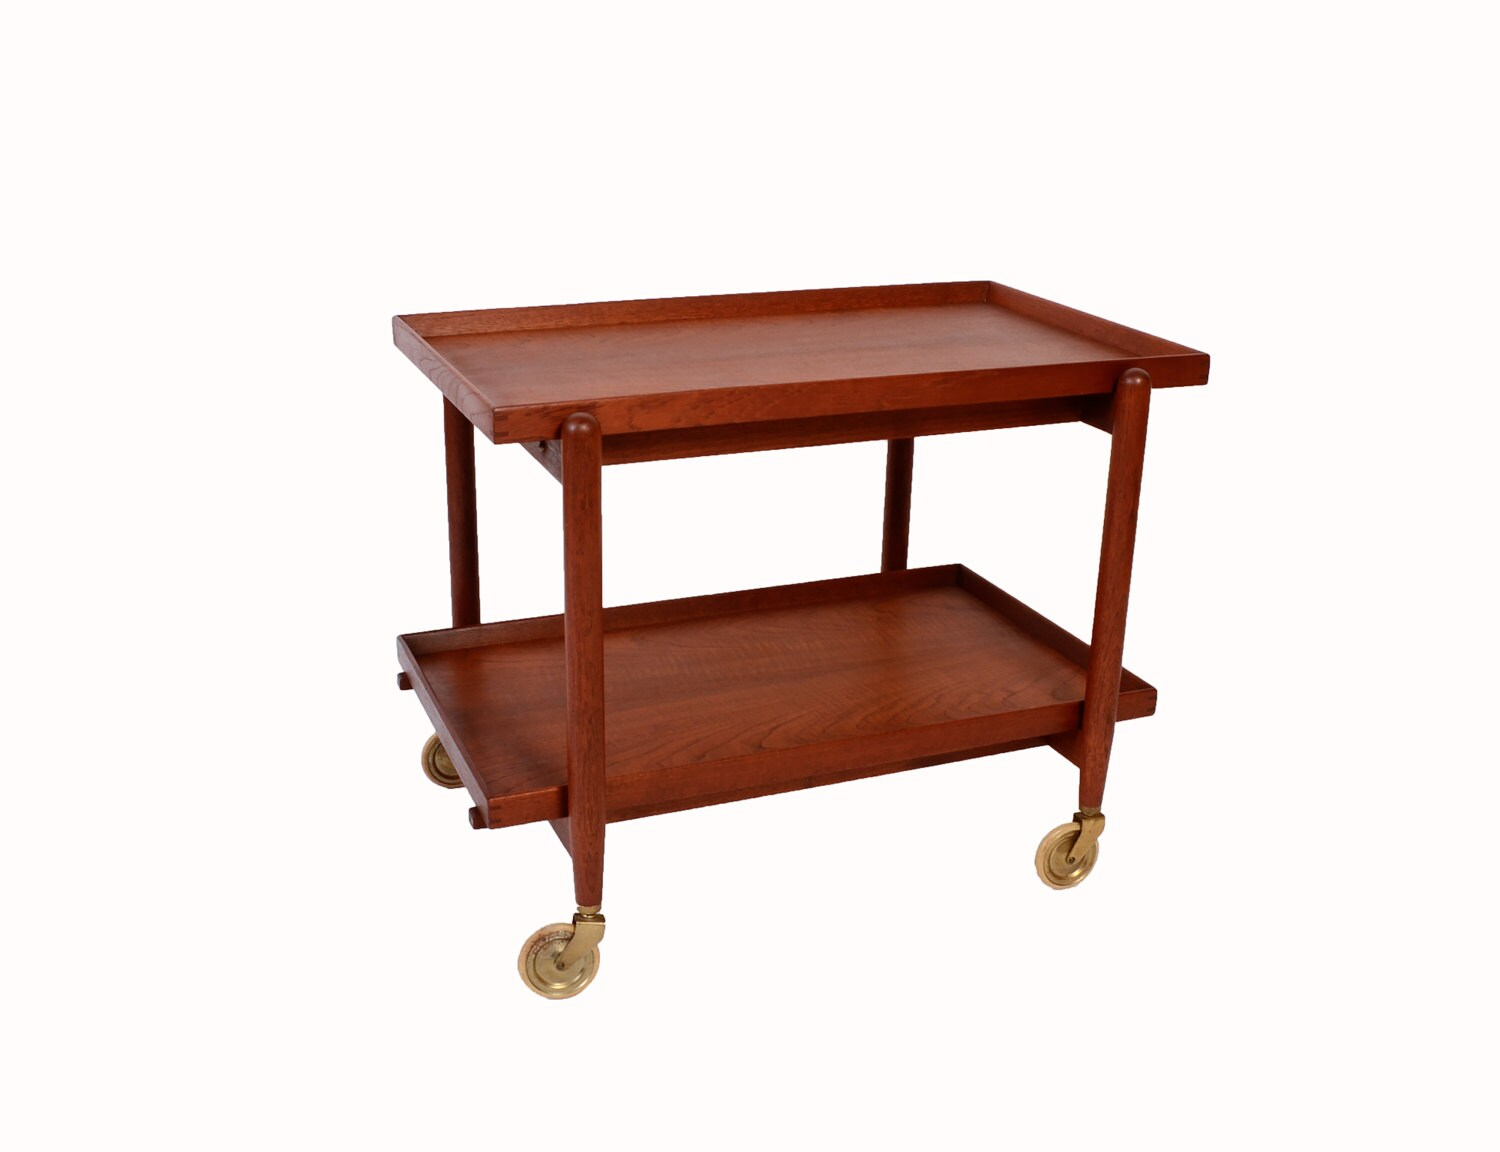 Butler Tray Coffee Table Poul Hundevad Teak Bar Cart Rolling Tea Cart Butlers Tray